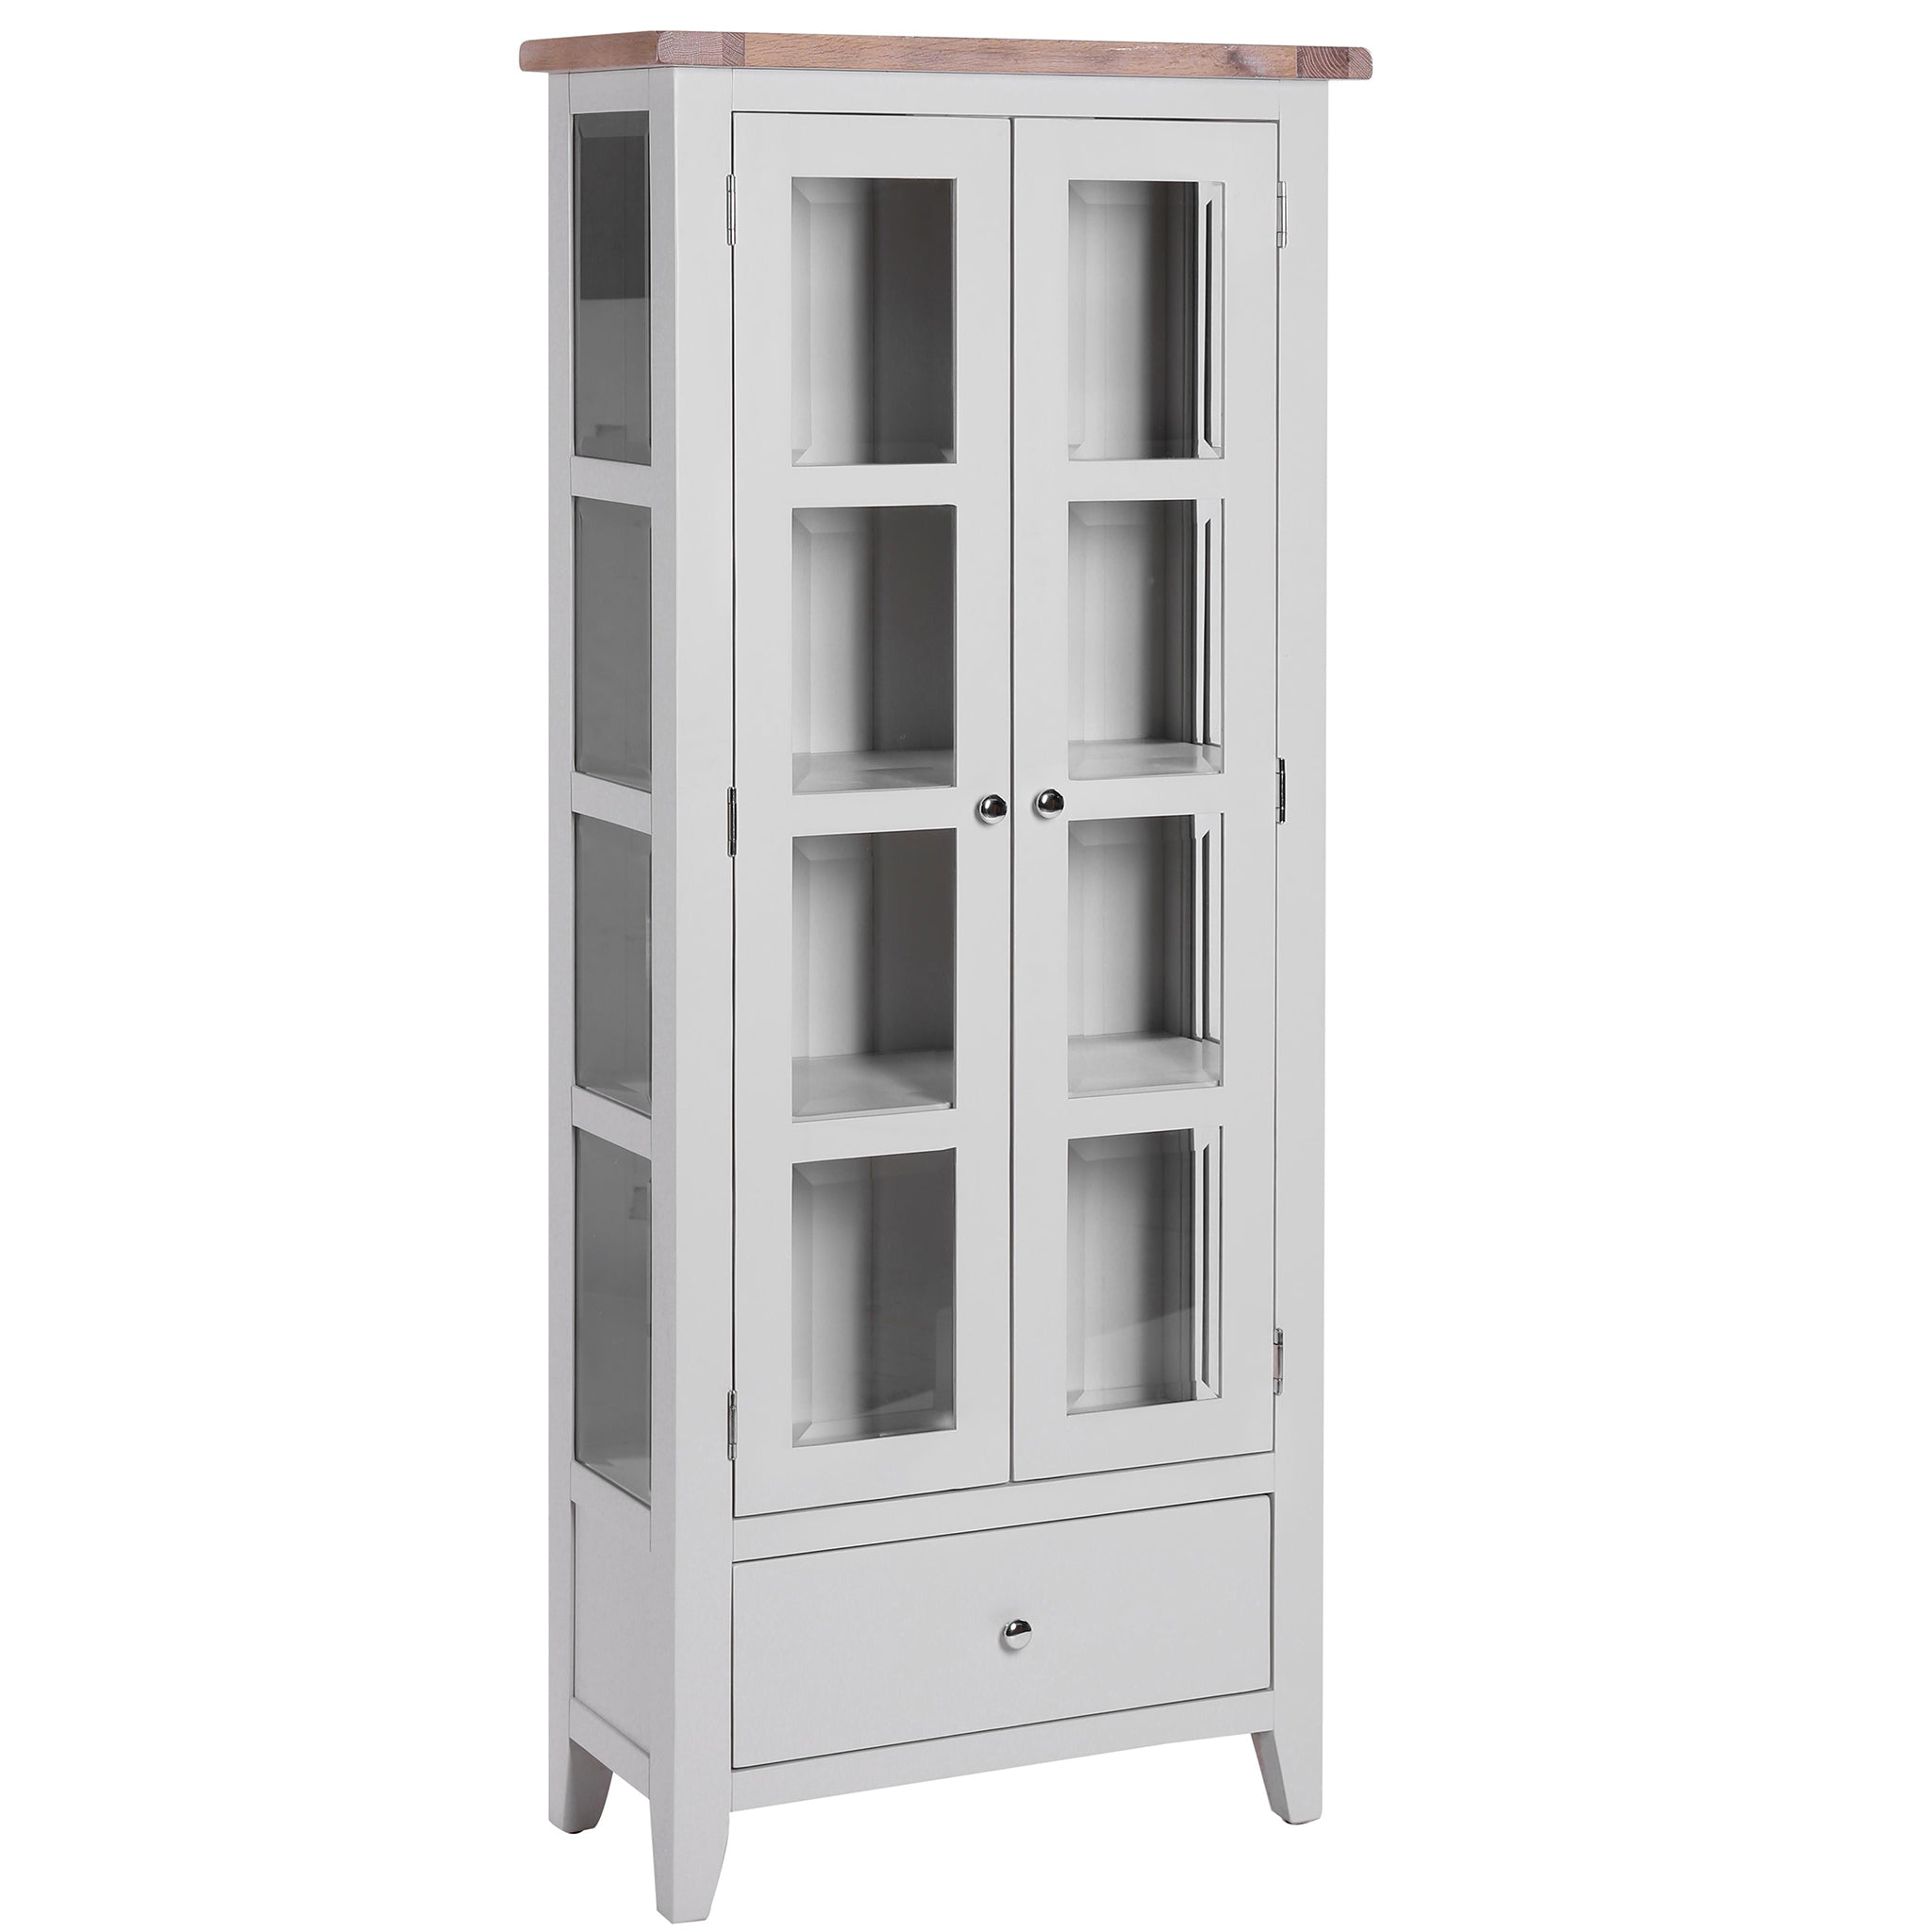 Light grey painted glazed display cabinet with 2 doors, 1 drawer and silver handles